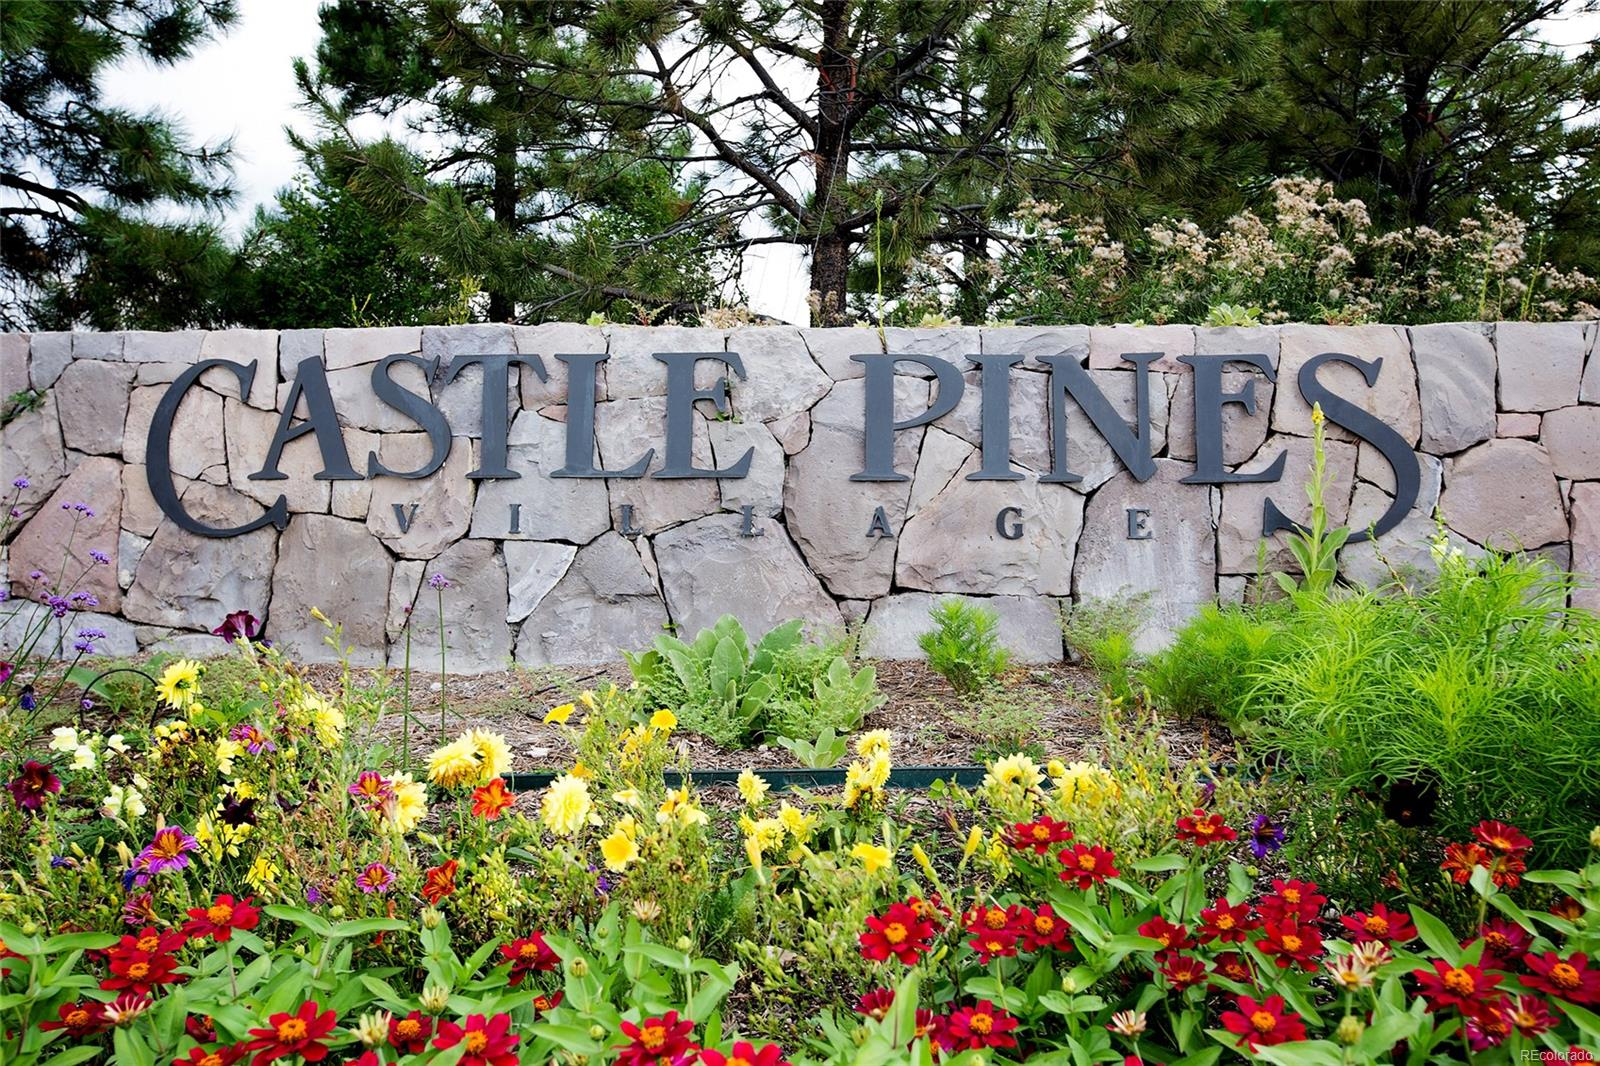 783 International Isle Drive, Castle Rock, CO 80108 - Castle Rock, CO real estate listing